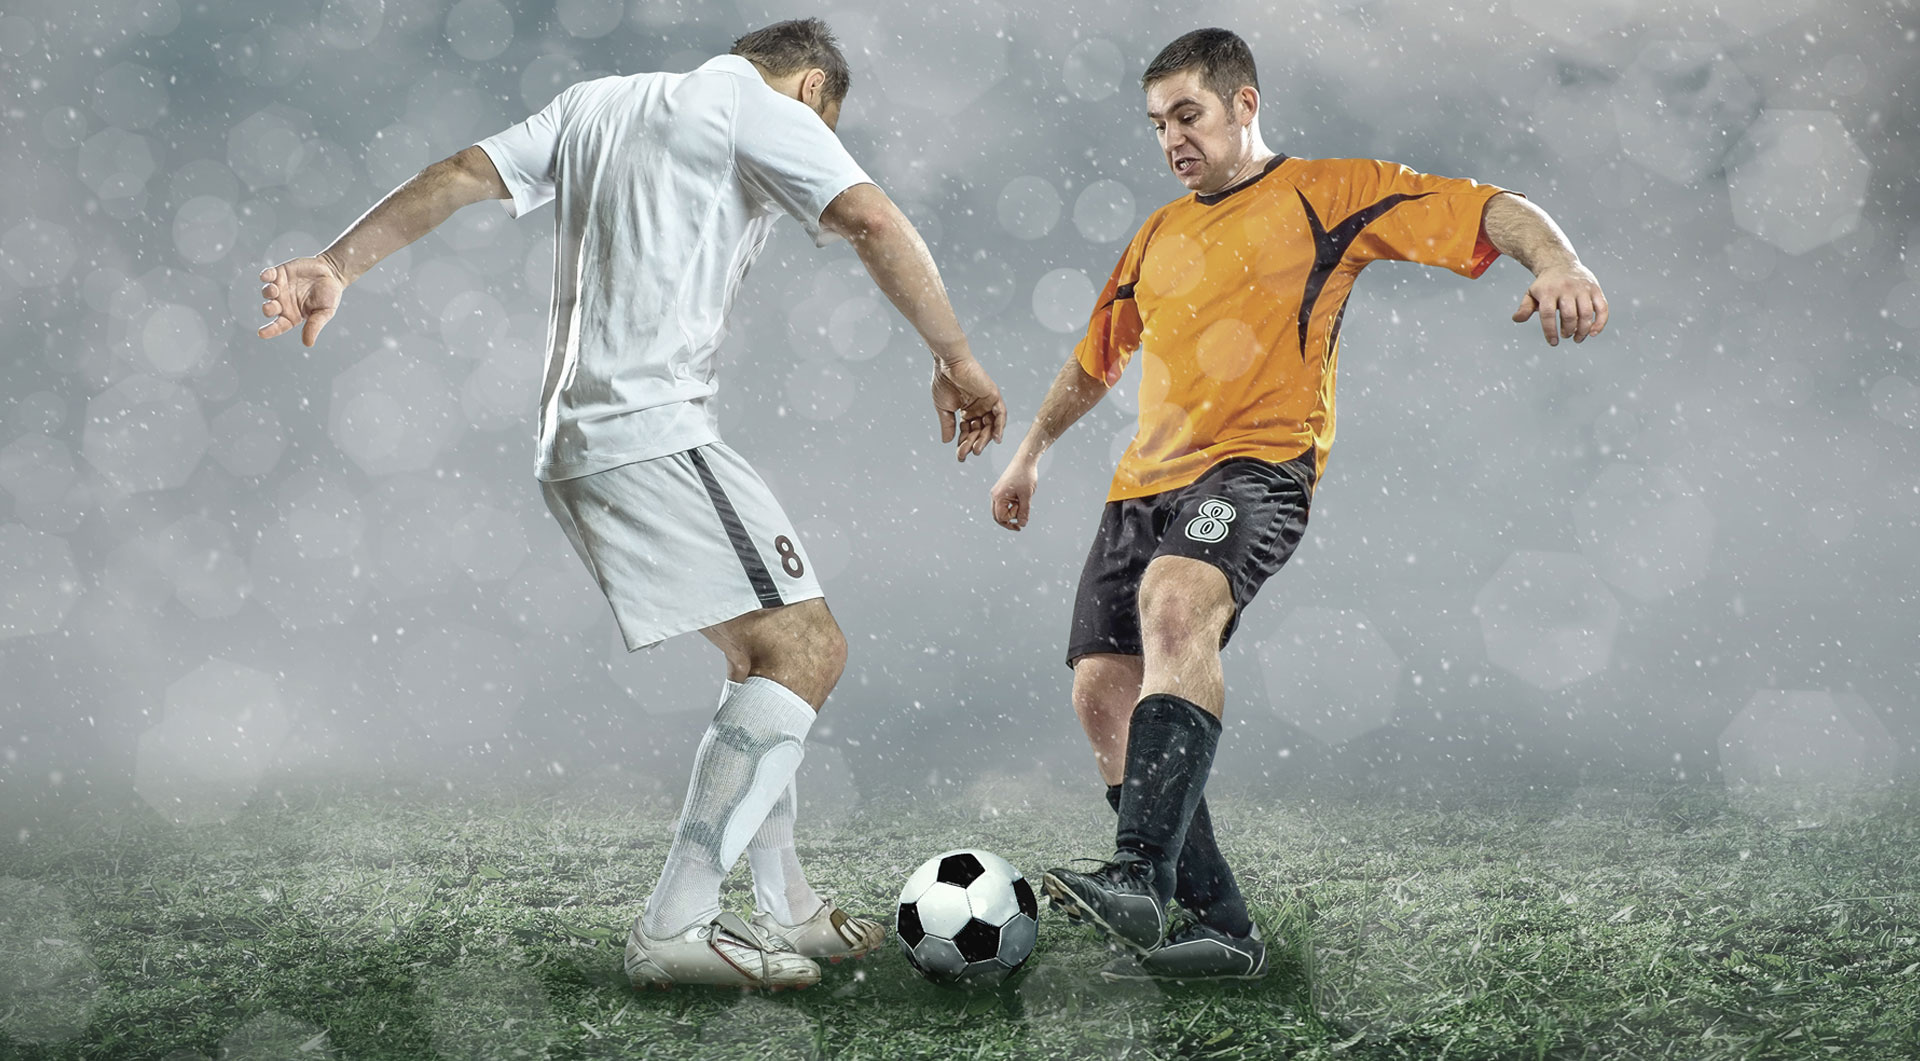 Lithuania vs Luxembourg live